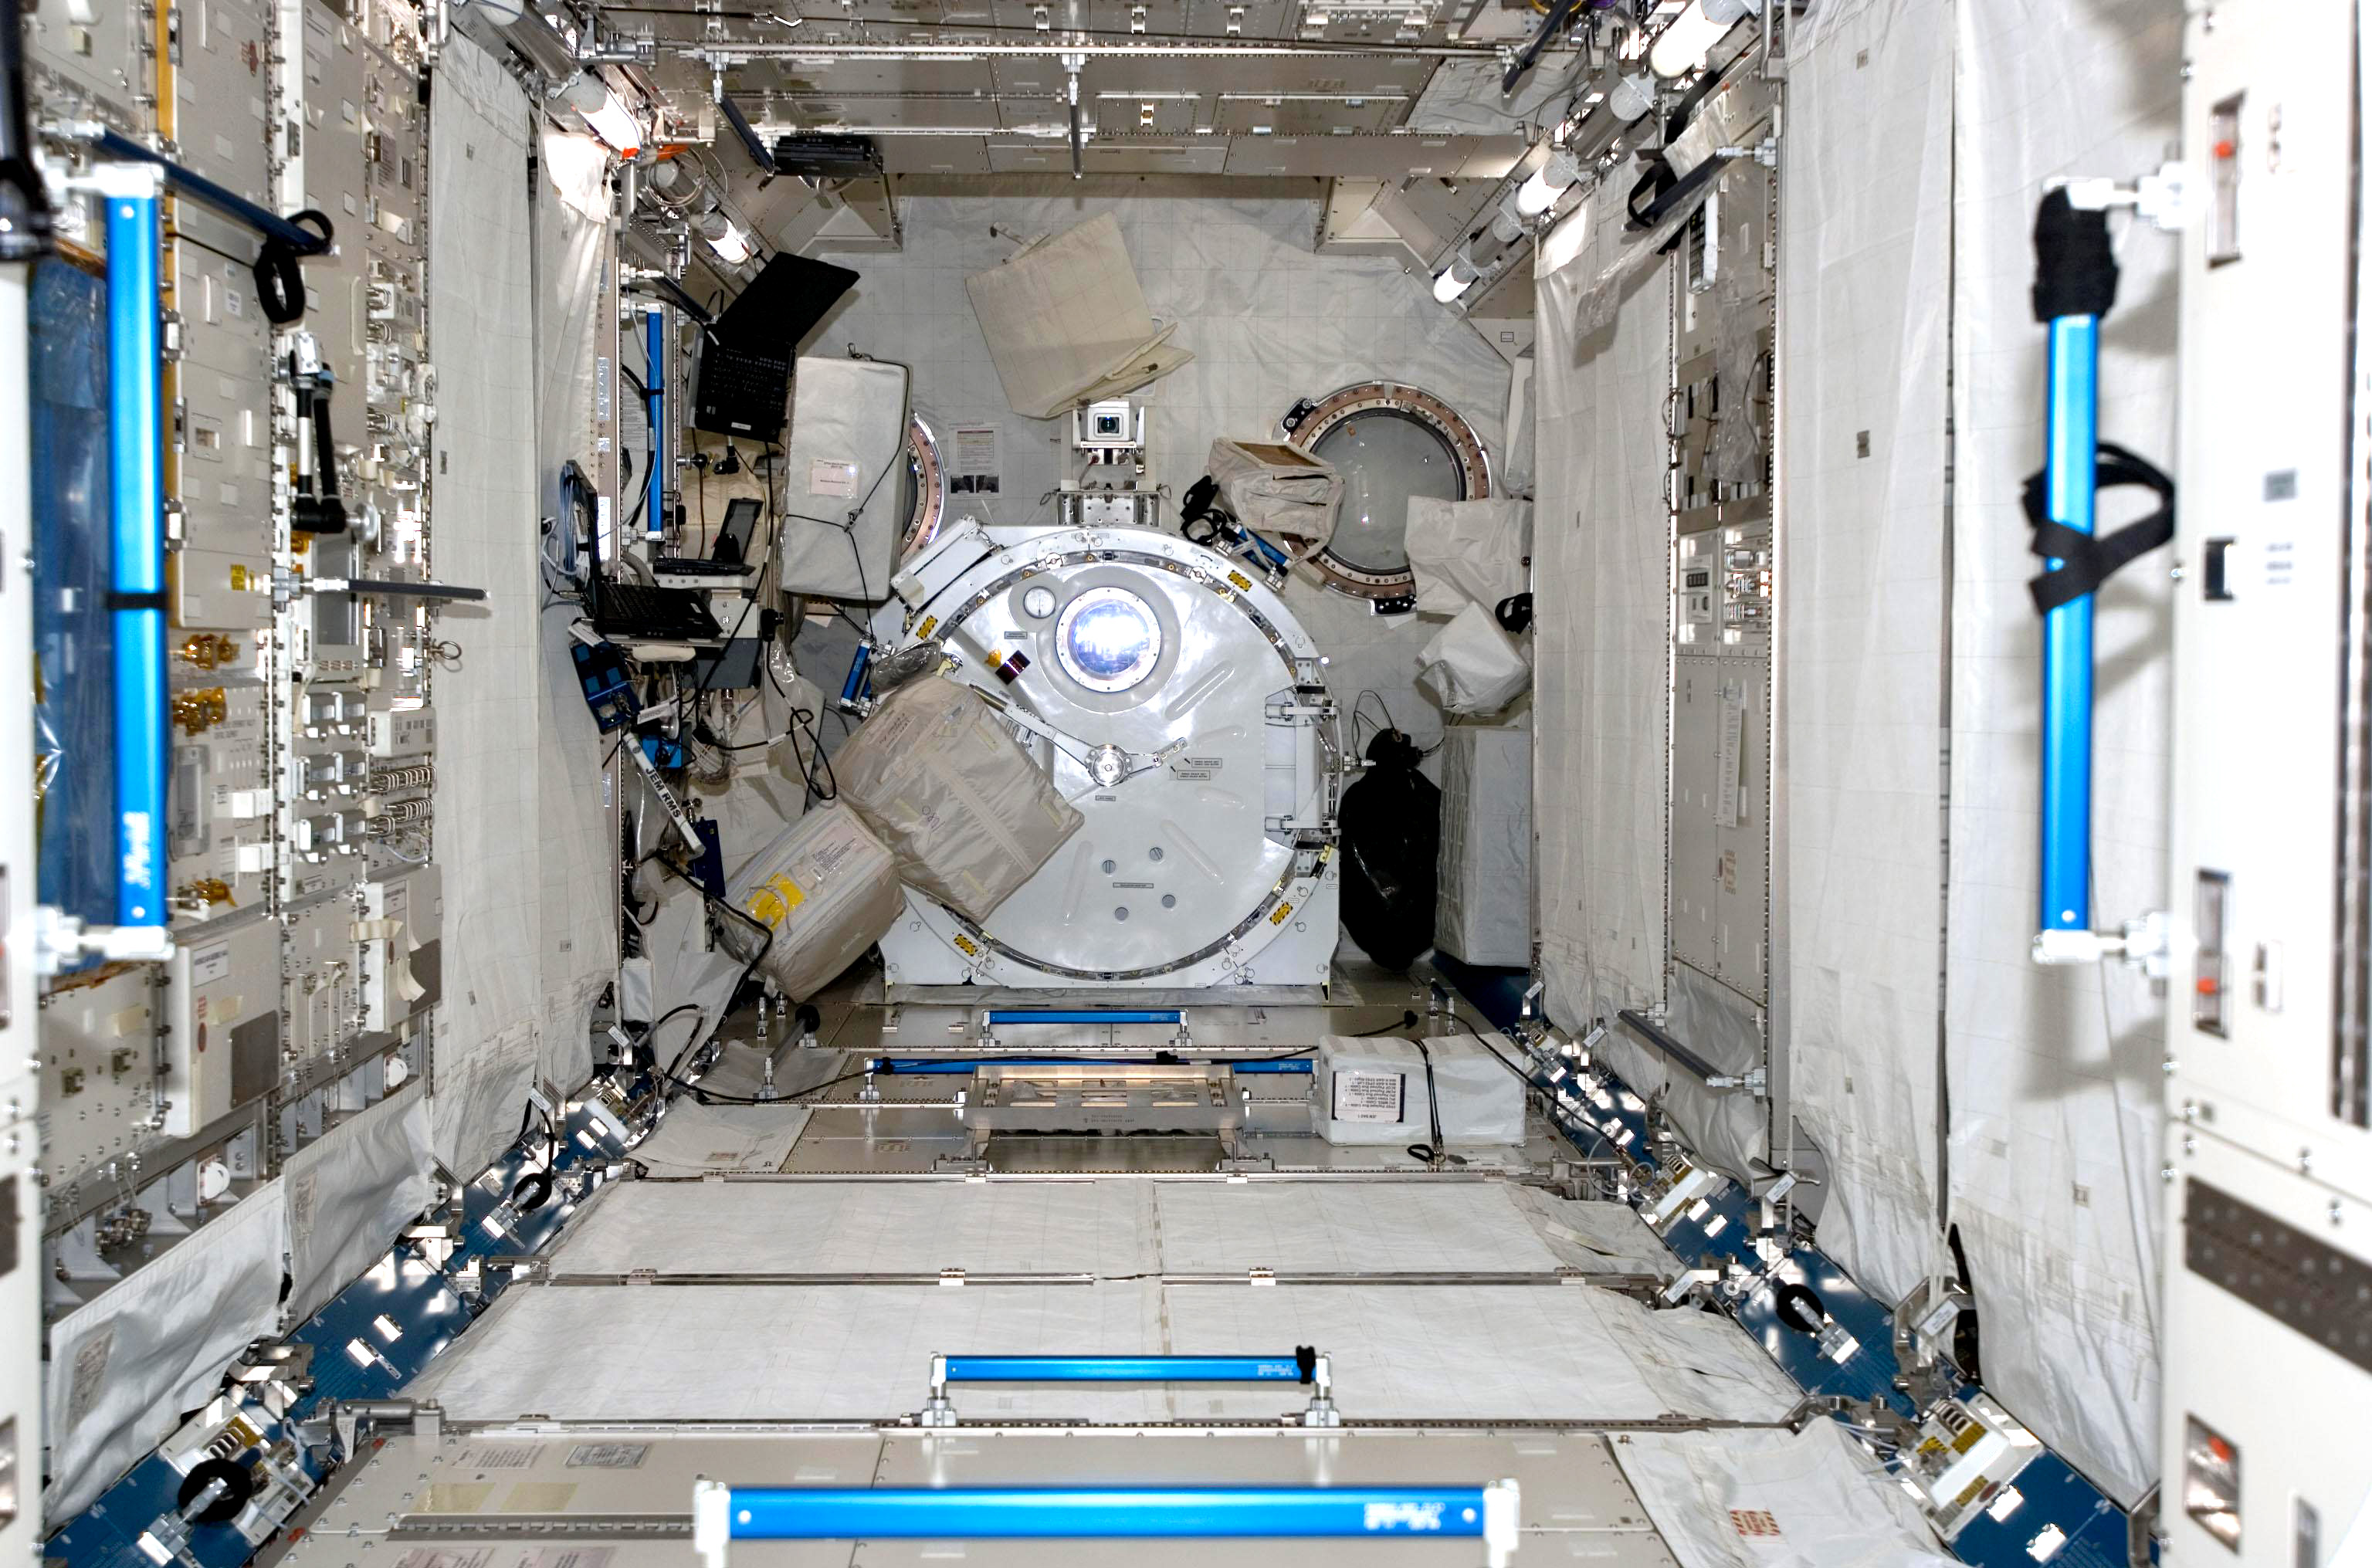 Space in Images - 2008 - 06 - Interior Japanese Experiment ...